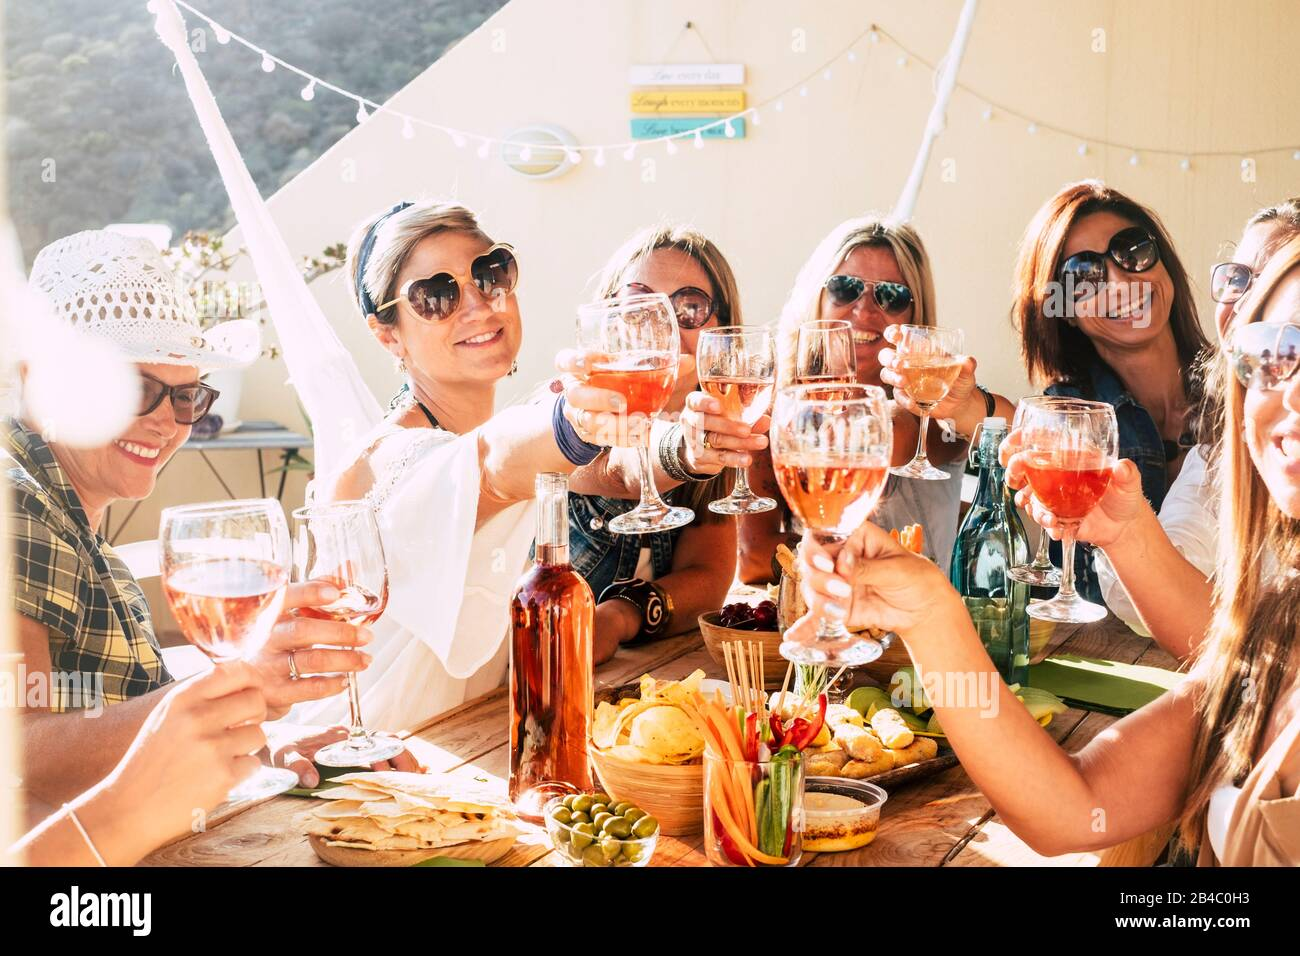 Cheerful group of happy female people clinking and toasting together with friendship and happiness - young and adult women have fun eating - food and beverage celebration concept Stock Photo